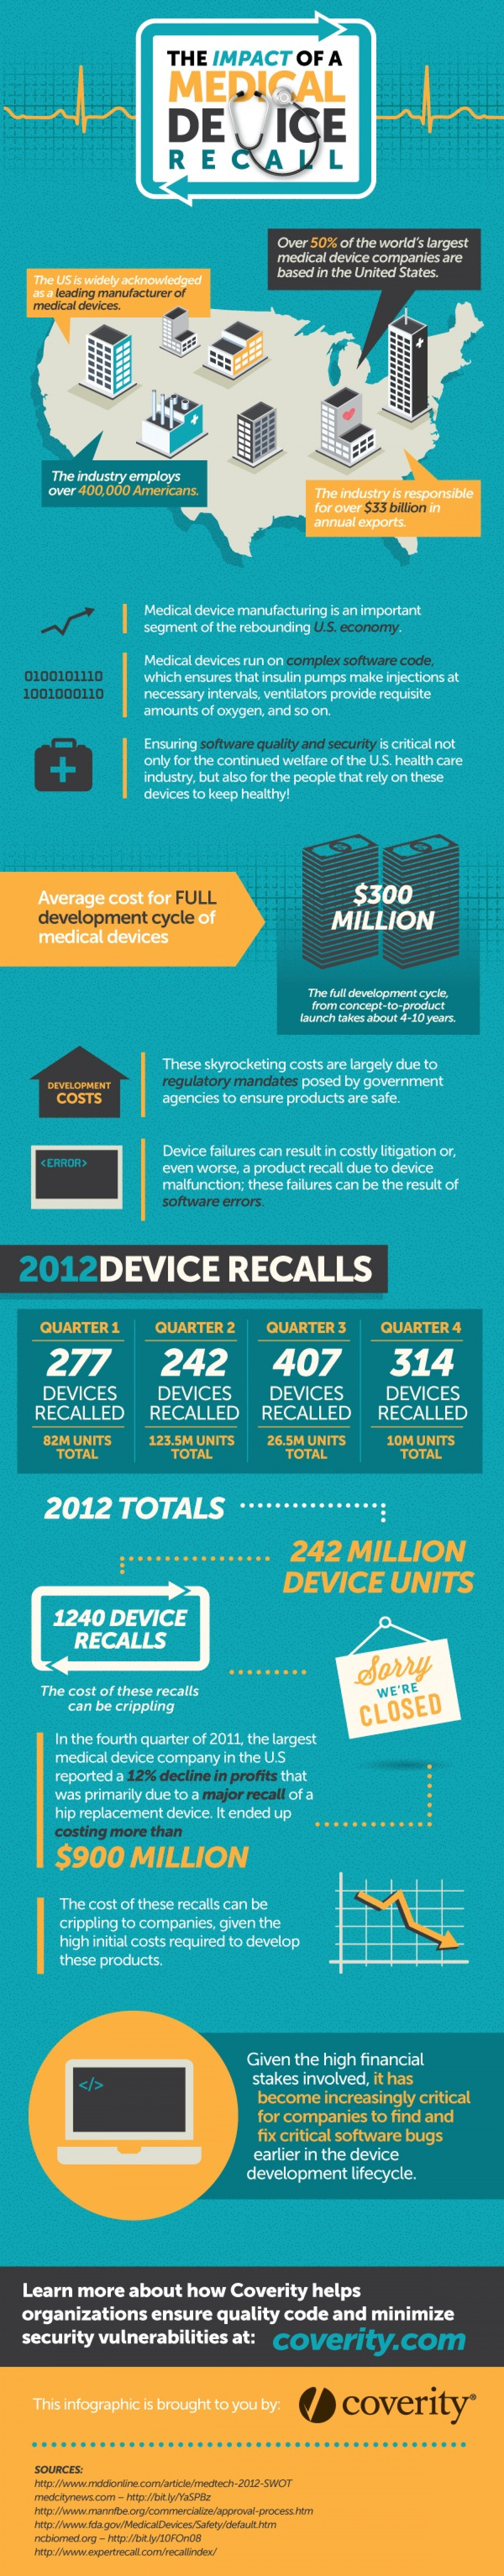 The Impact of a Medical Device Recall (Infographic) Infographic